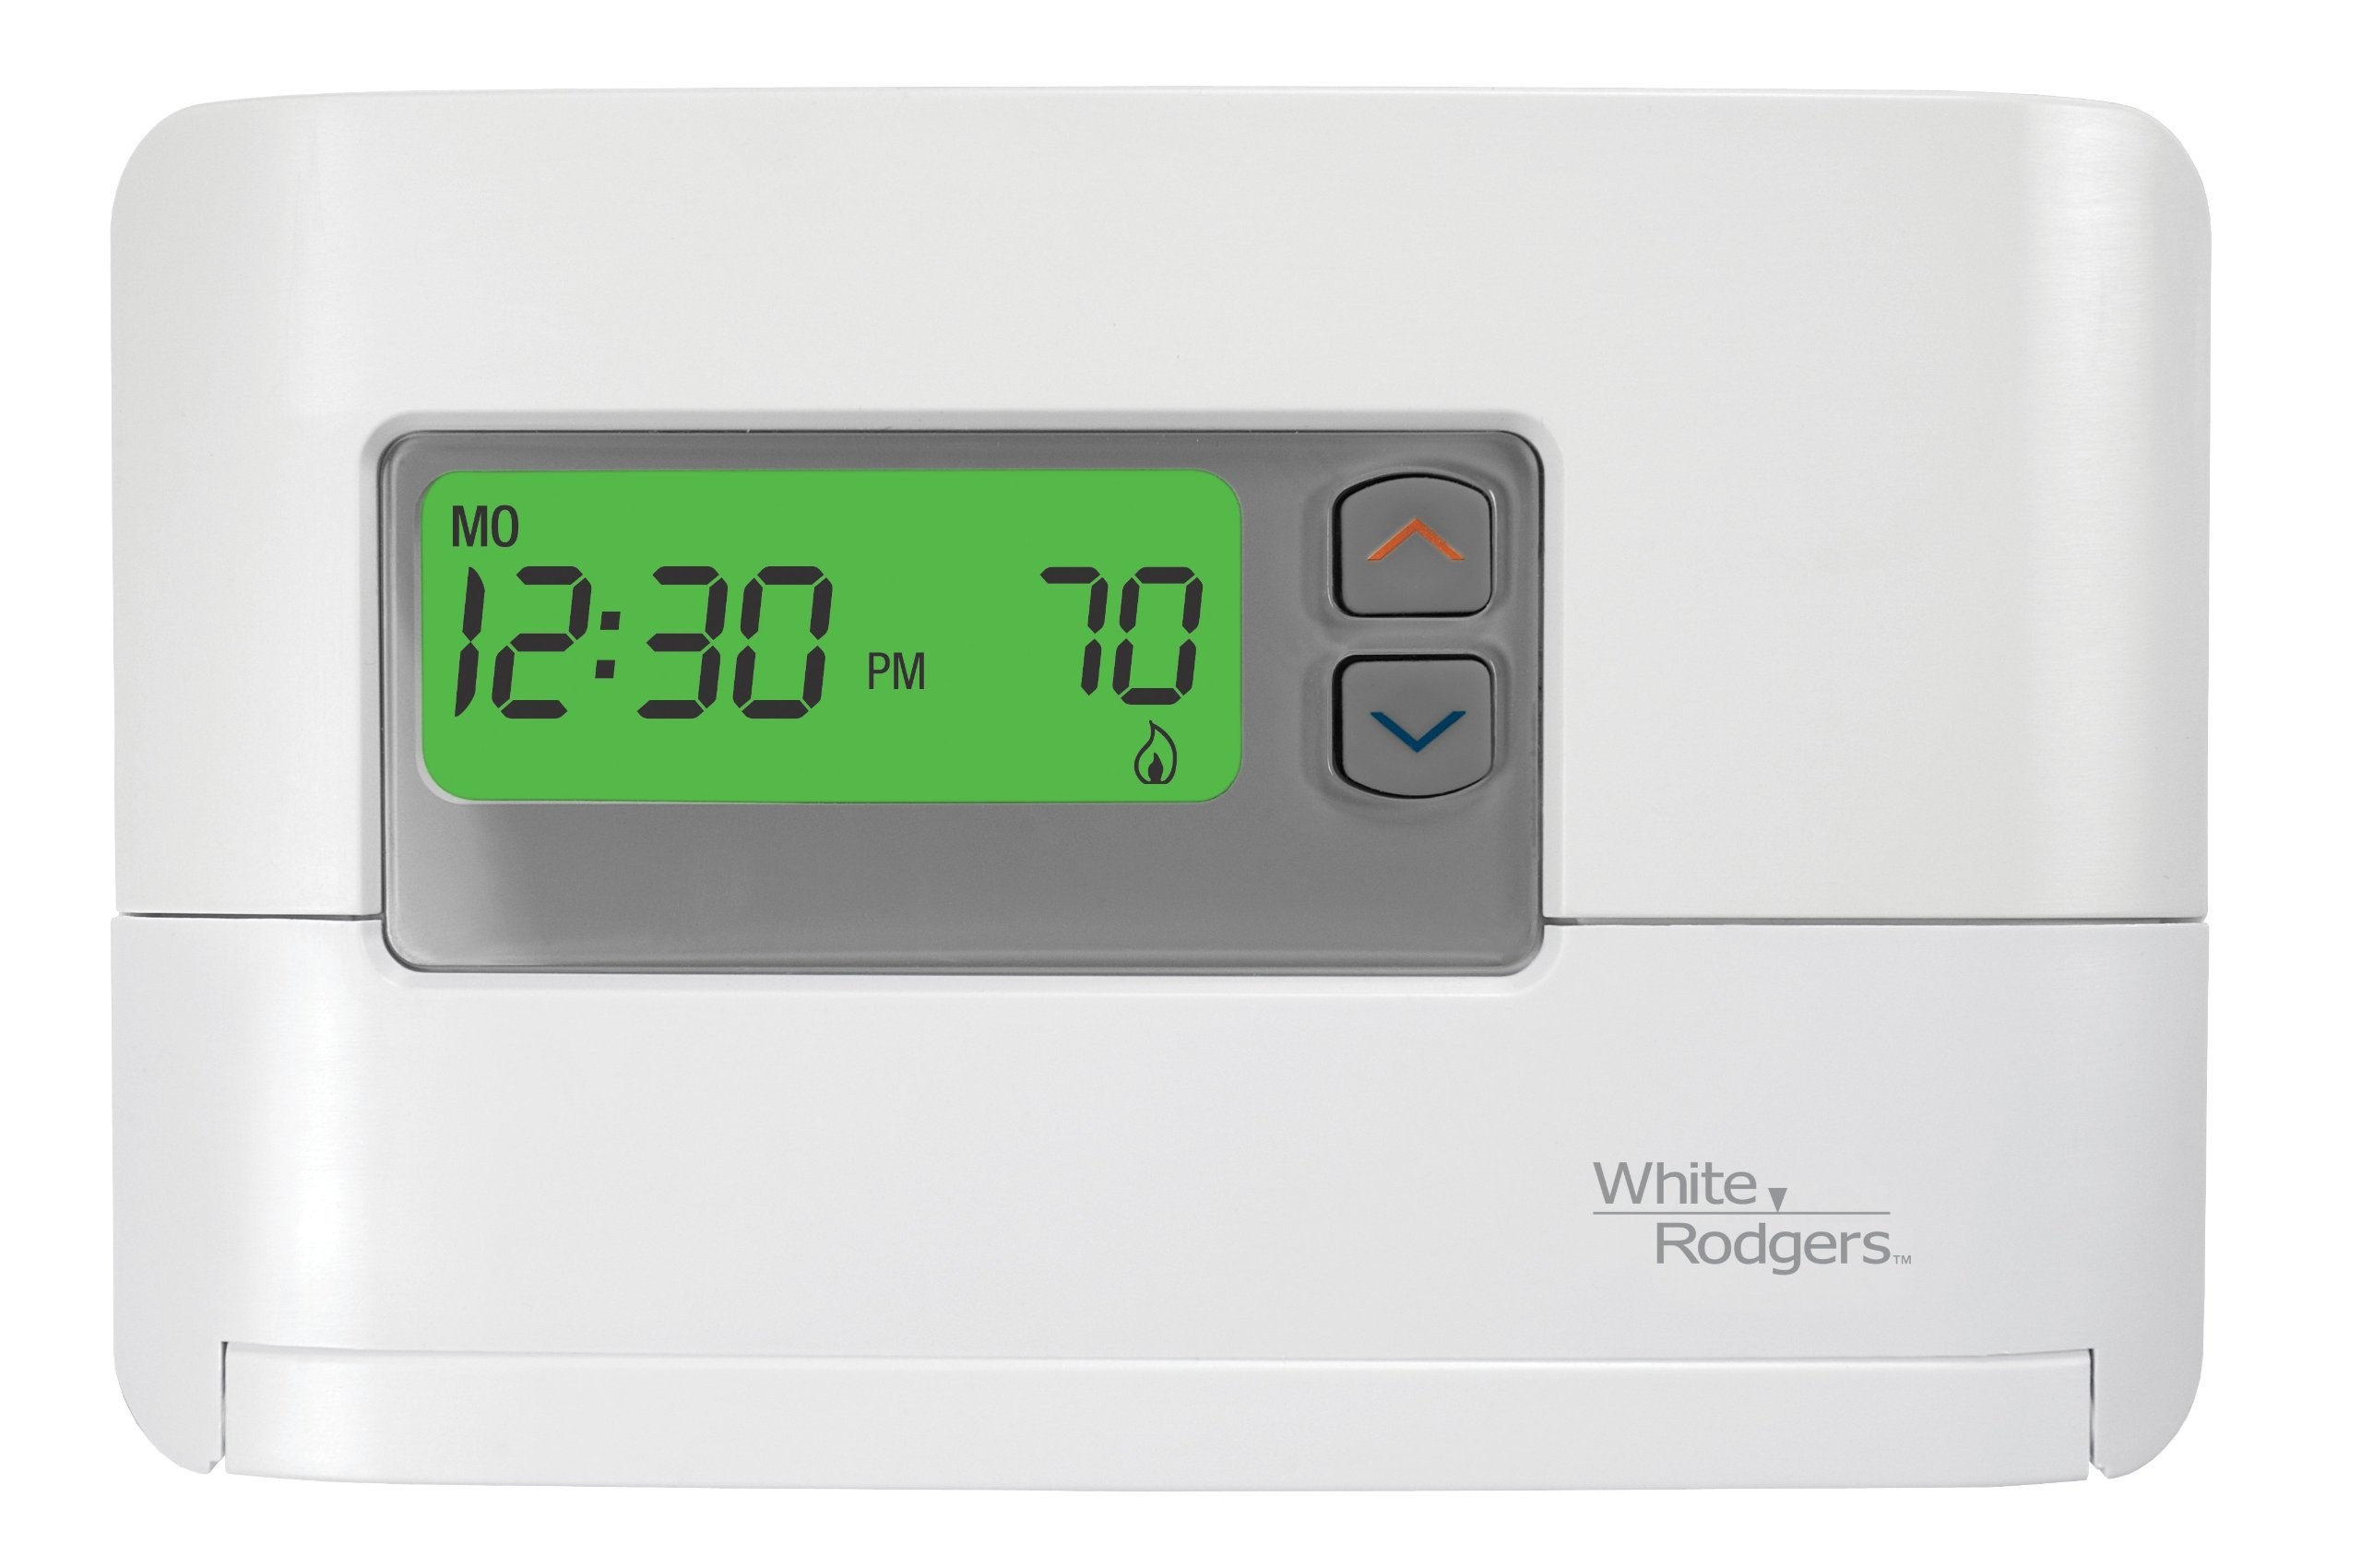 White-Rodgers P200 5-1-1 Day Programmable Thermostat for Single-Stage Systems